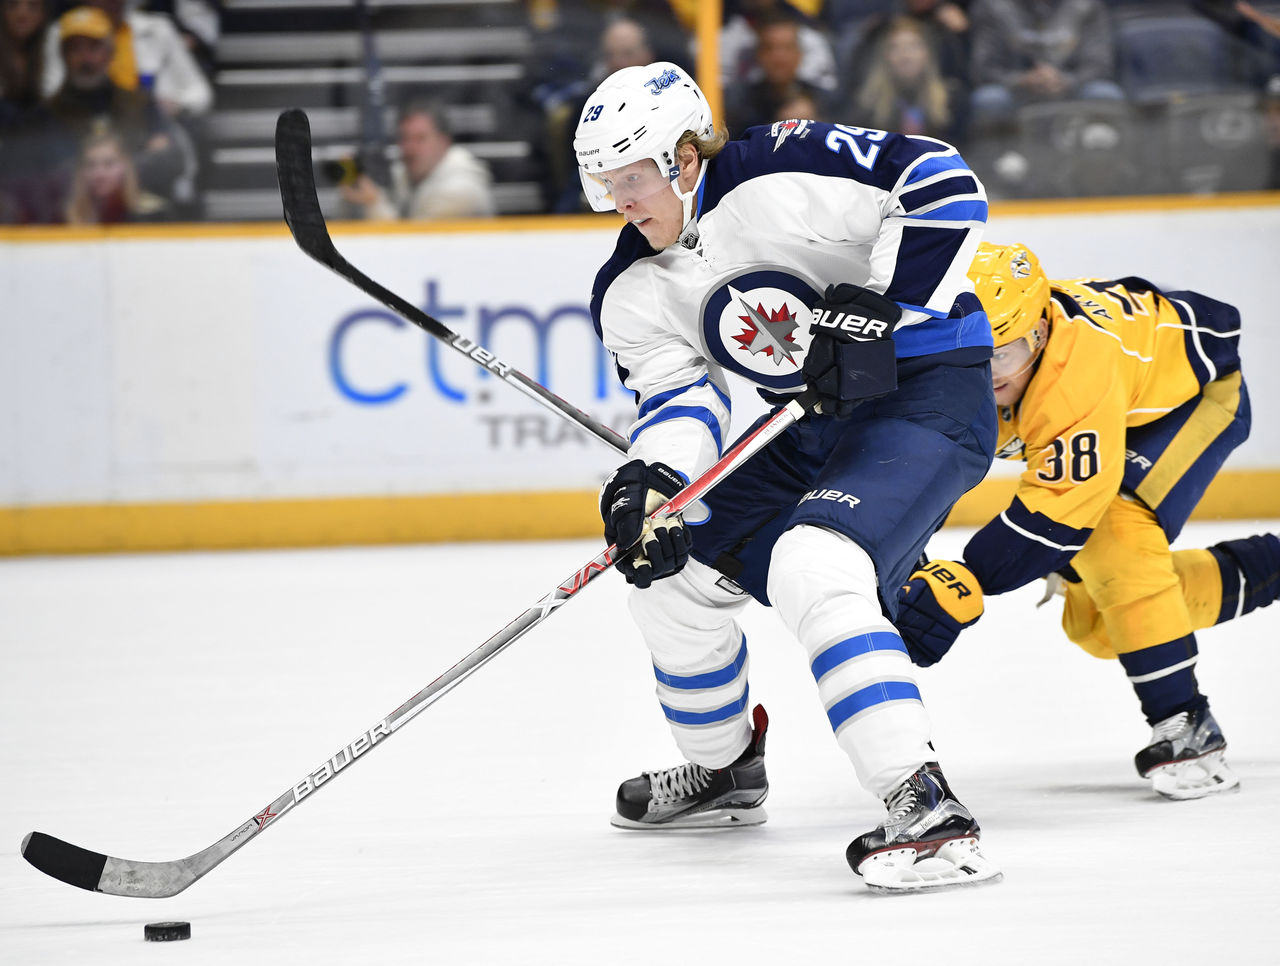 Cropped 2017 03 14t031035z 1534044912 nocid rtrmadp 3 nhl winnipeg jets at nashville predators